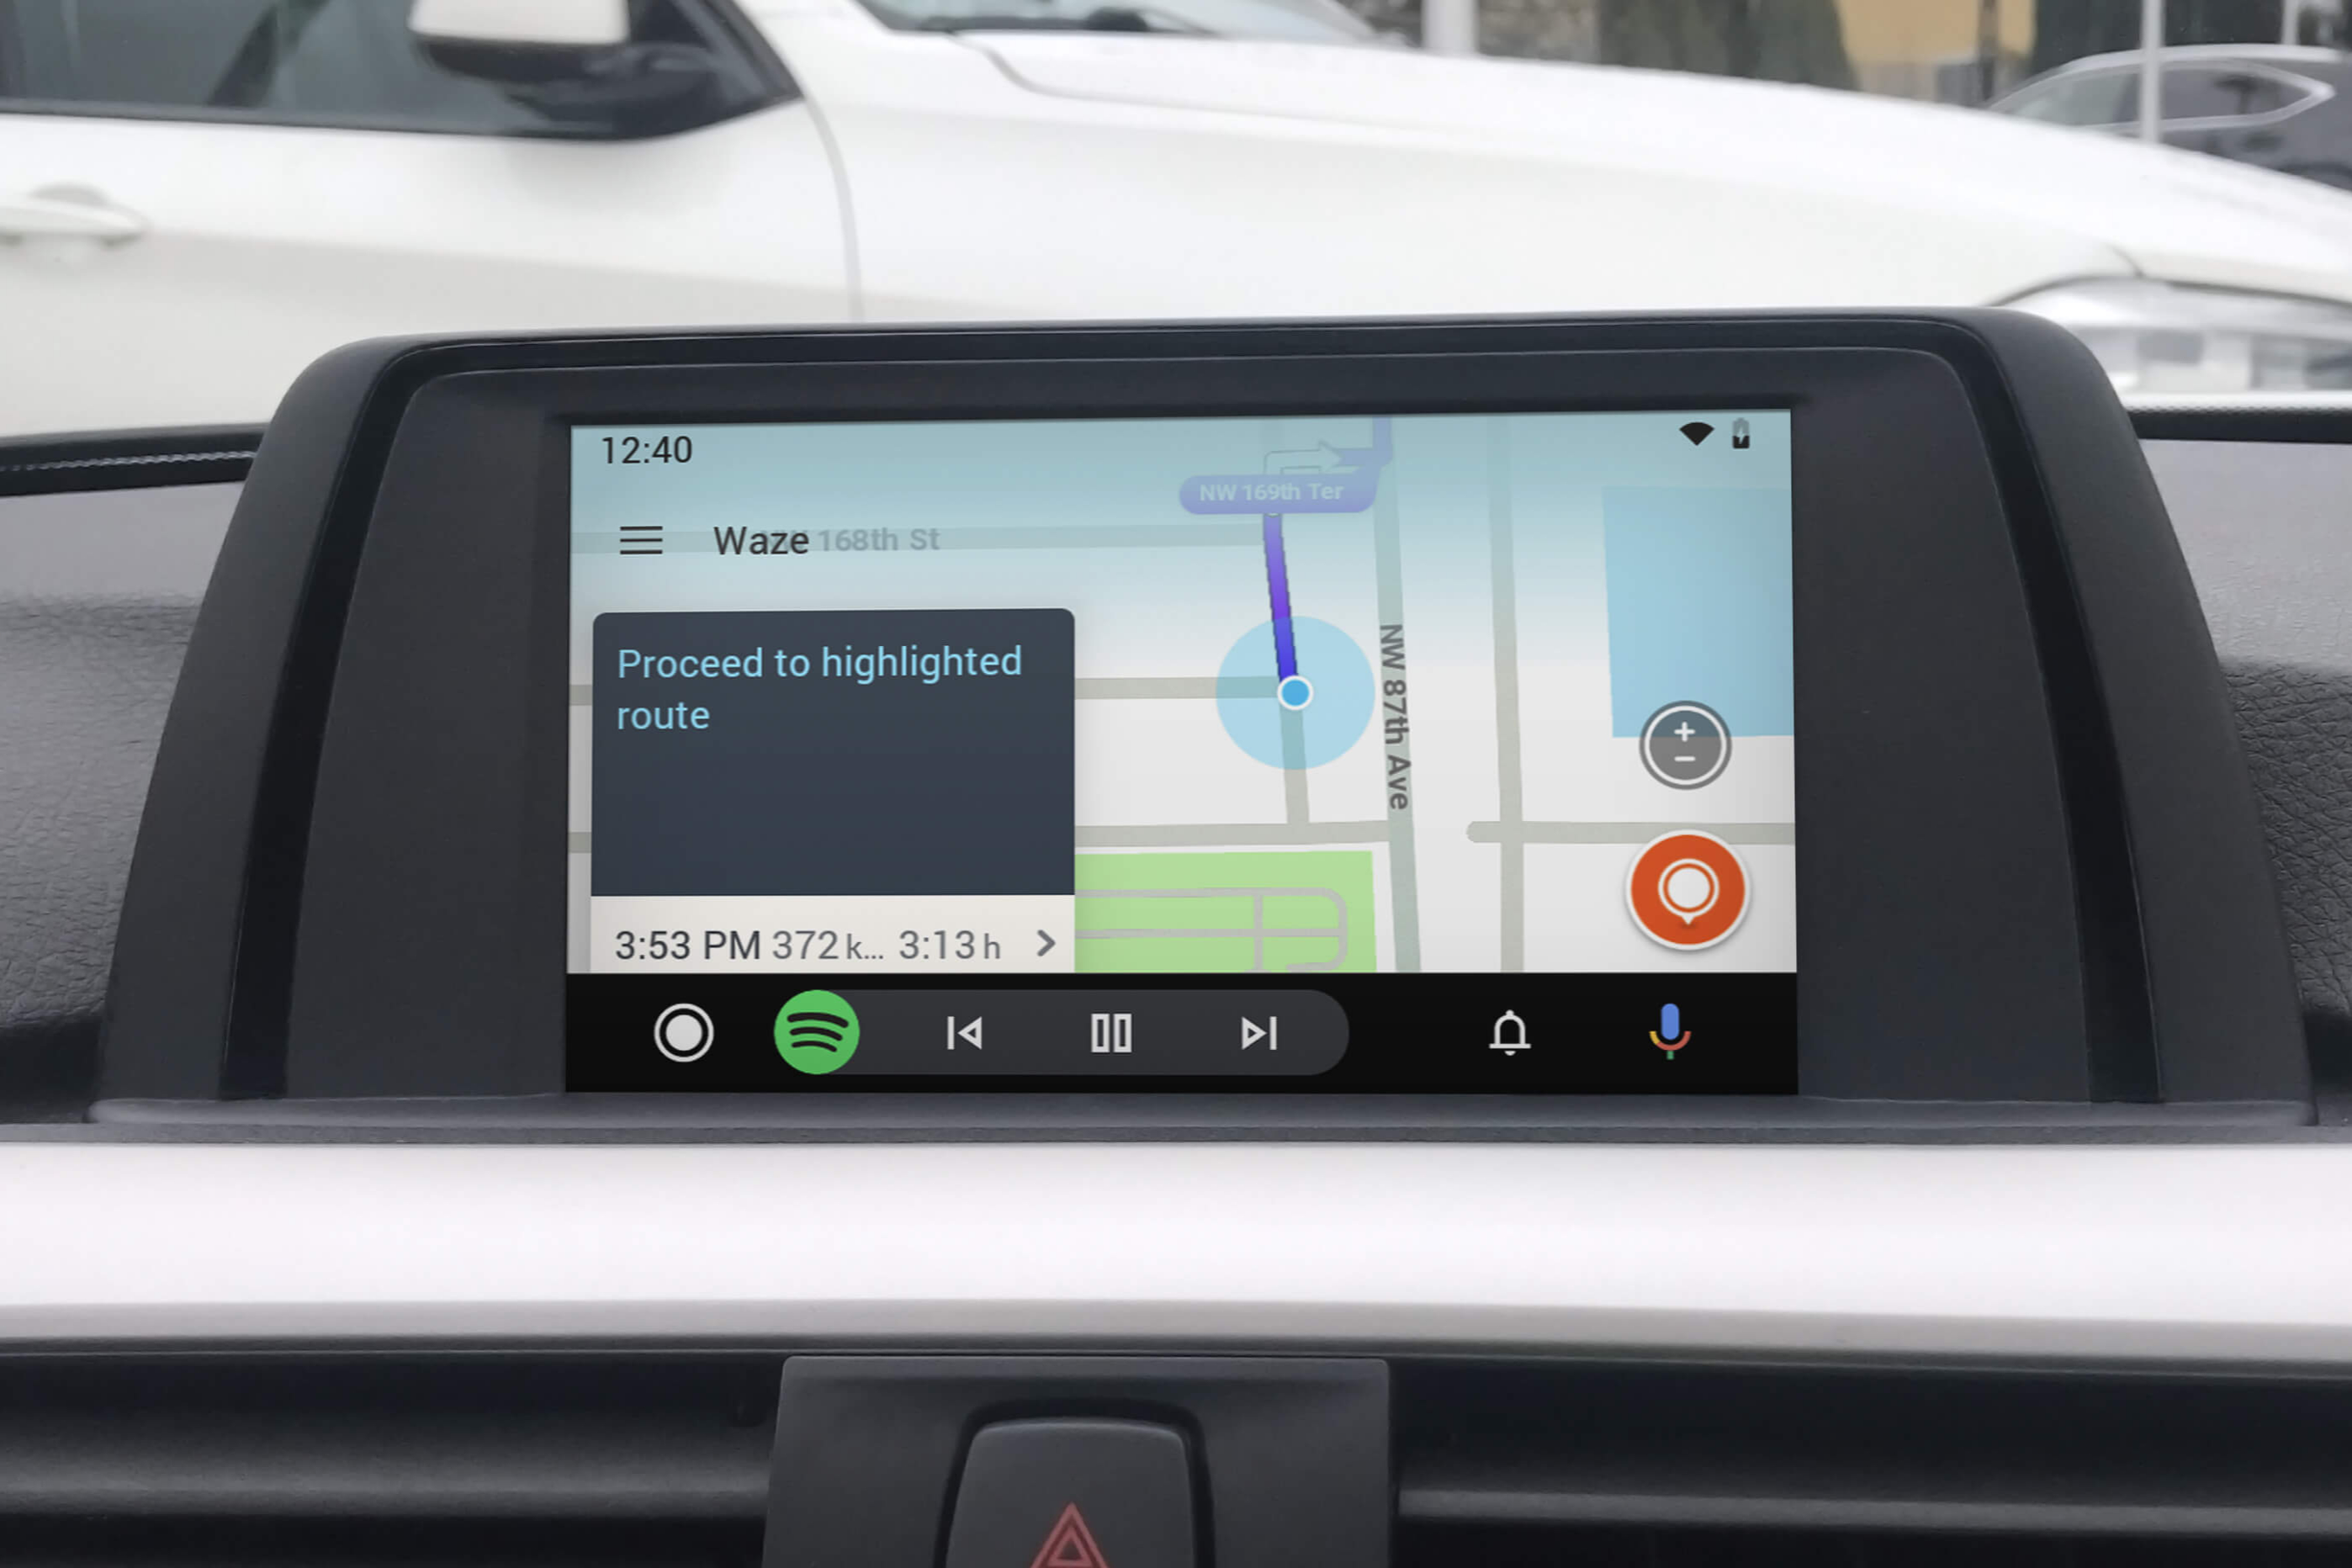 BMW Android Auto MMI Prime small screen waze